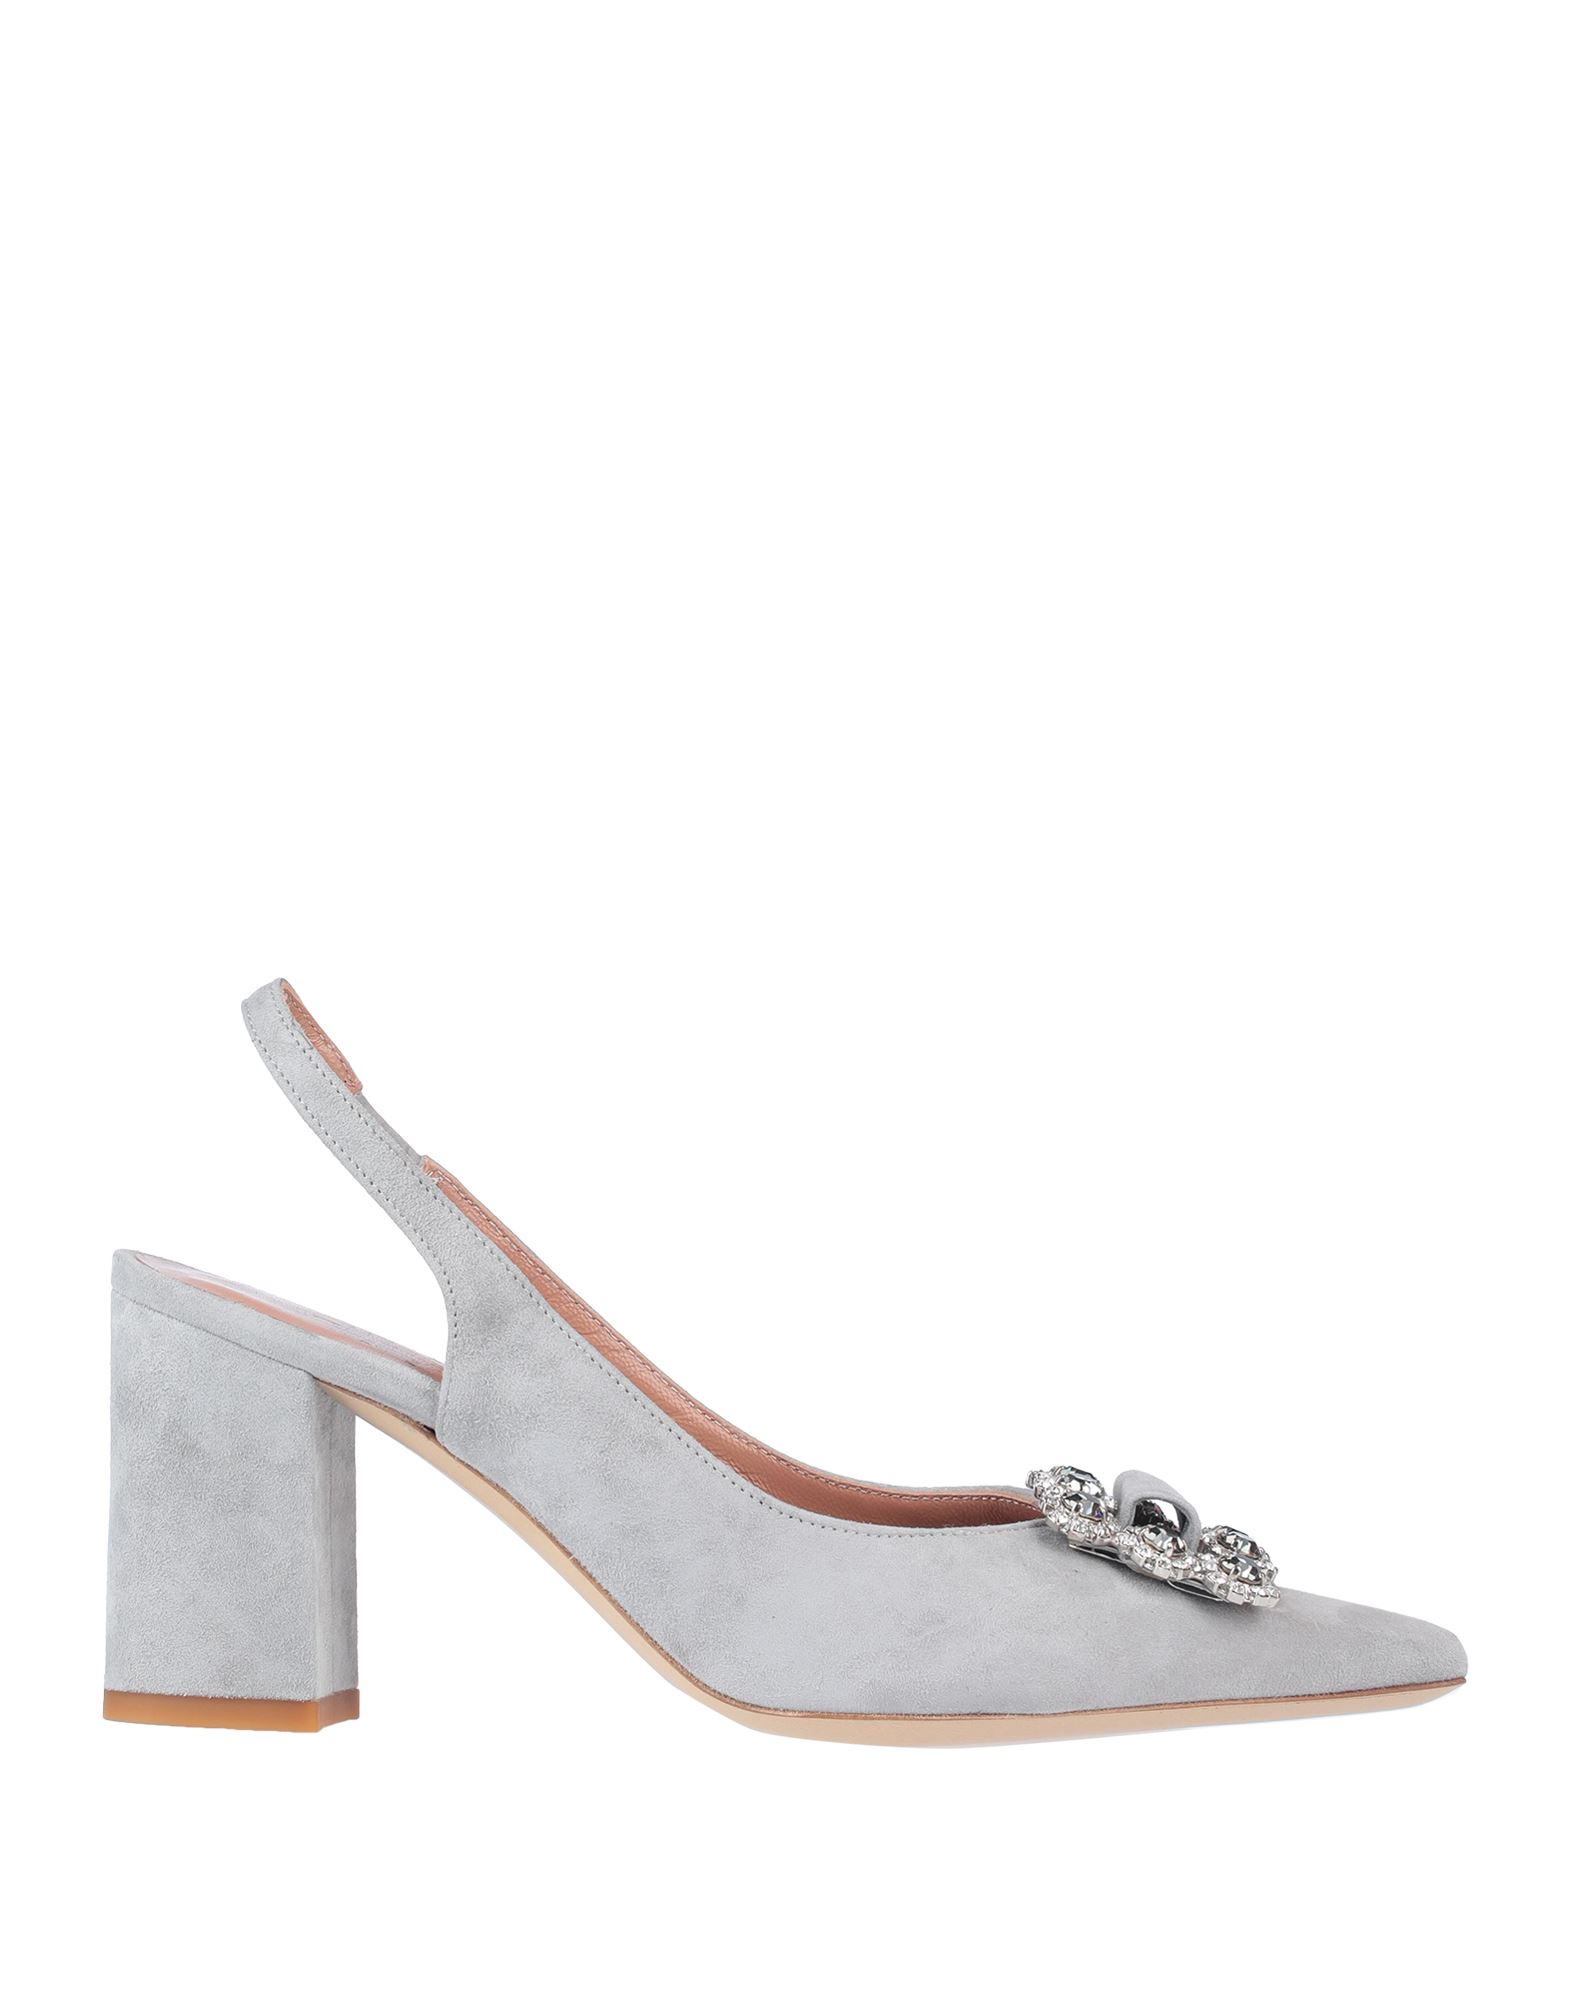 ELEVENTY Pumps. leather, suede effect, rhinestones, solid color, narrow toeline, square heel, covered heel, elasticized straps, leather lining, leather/rubber sole, contains non-textile parts of animal origin. Soft Leather